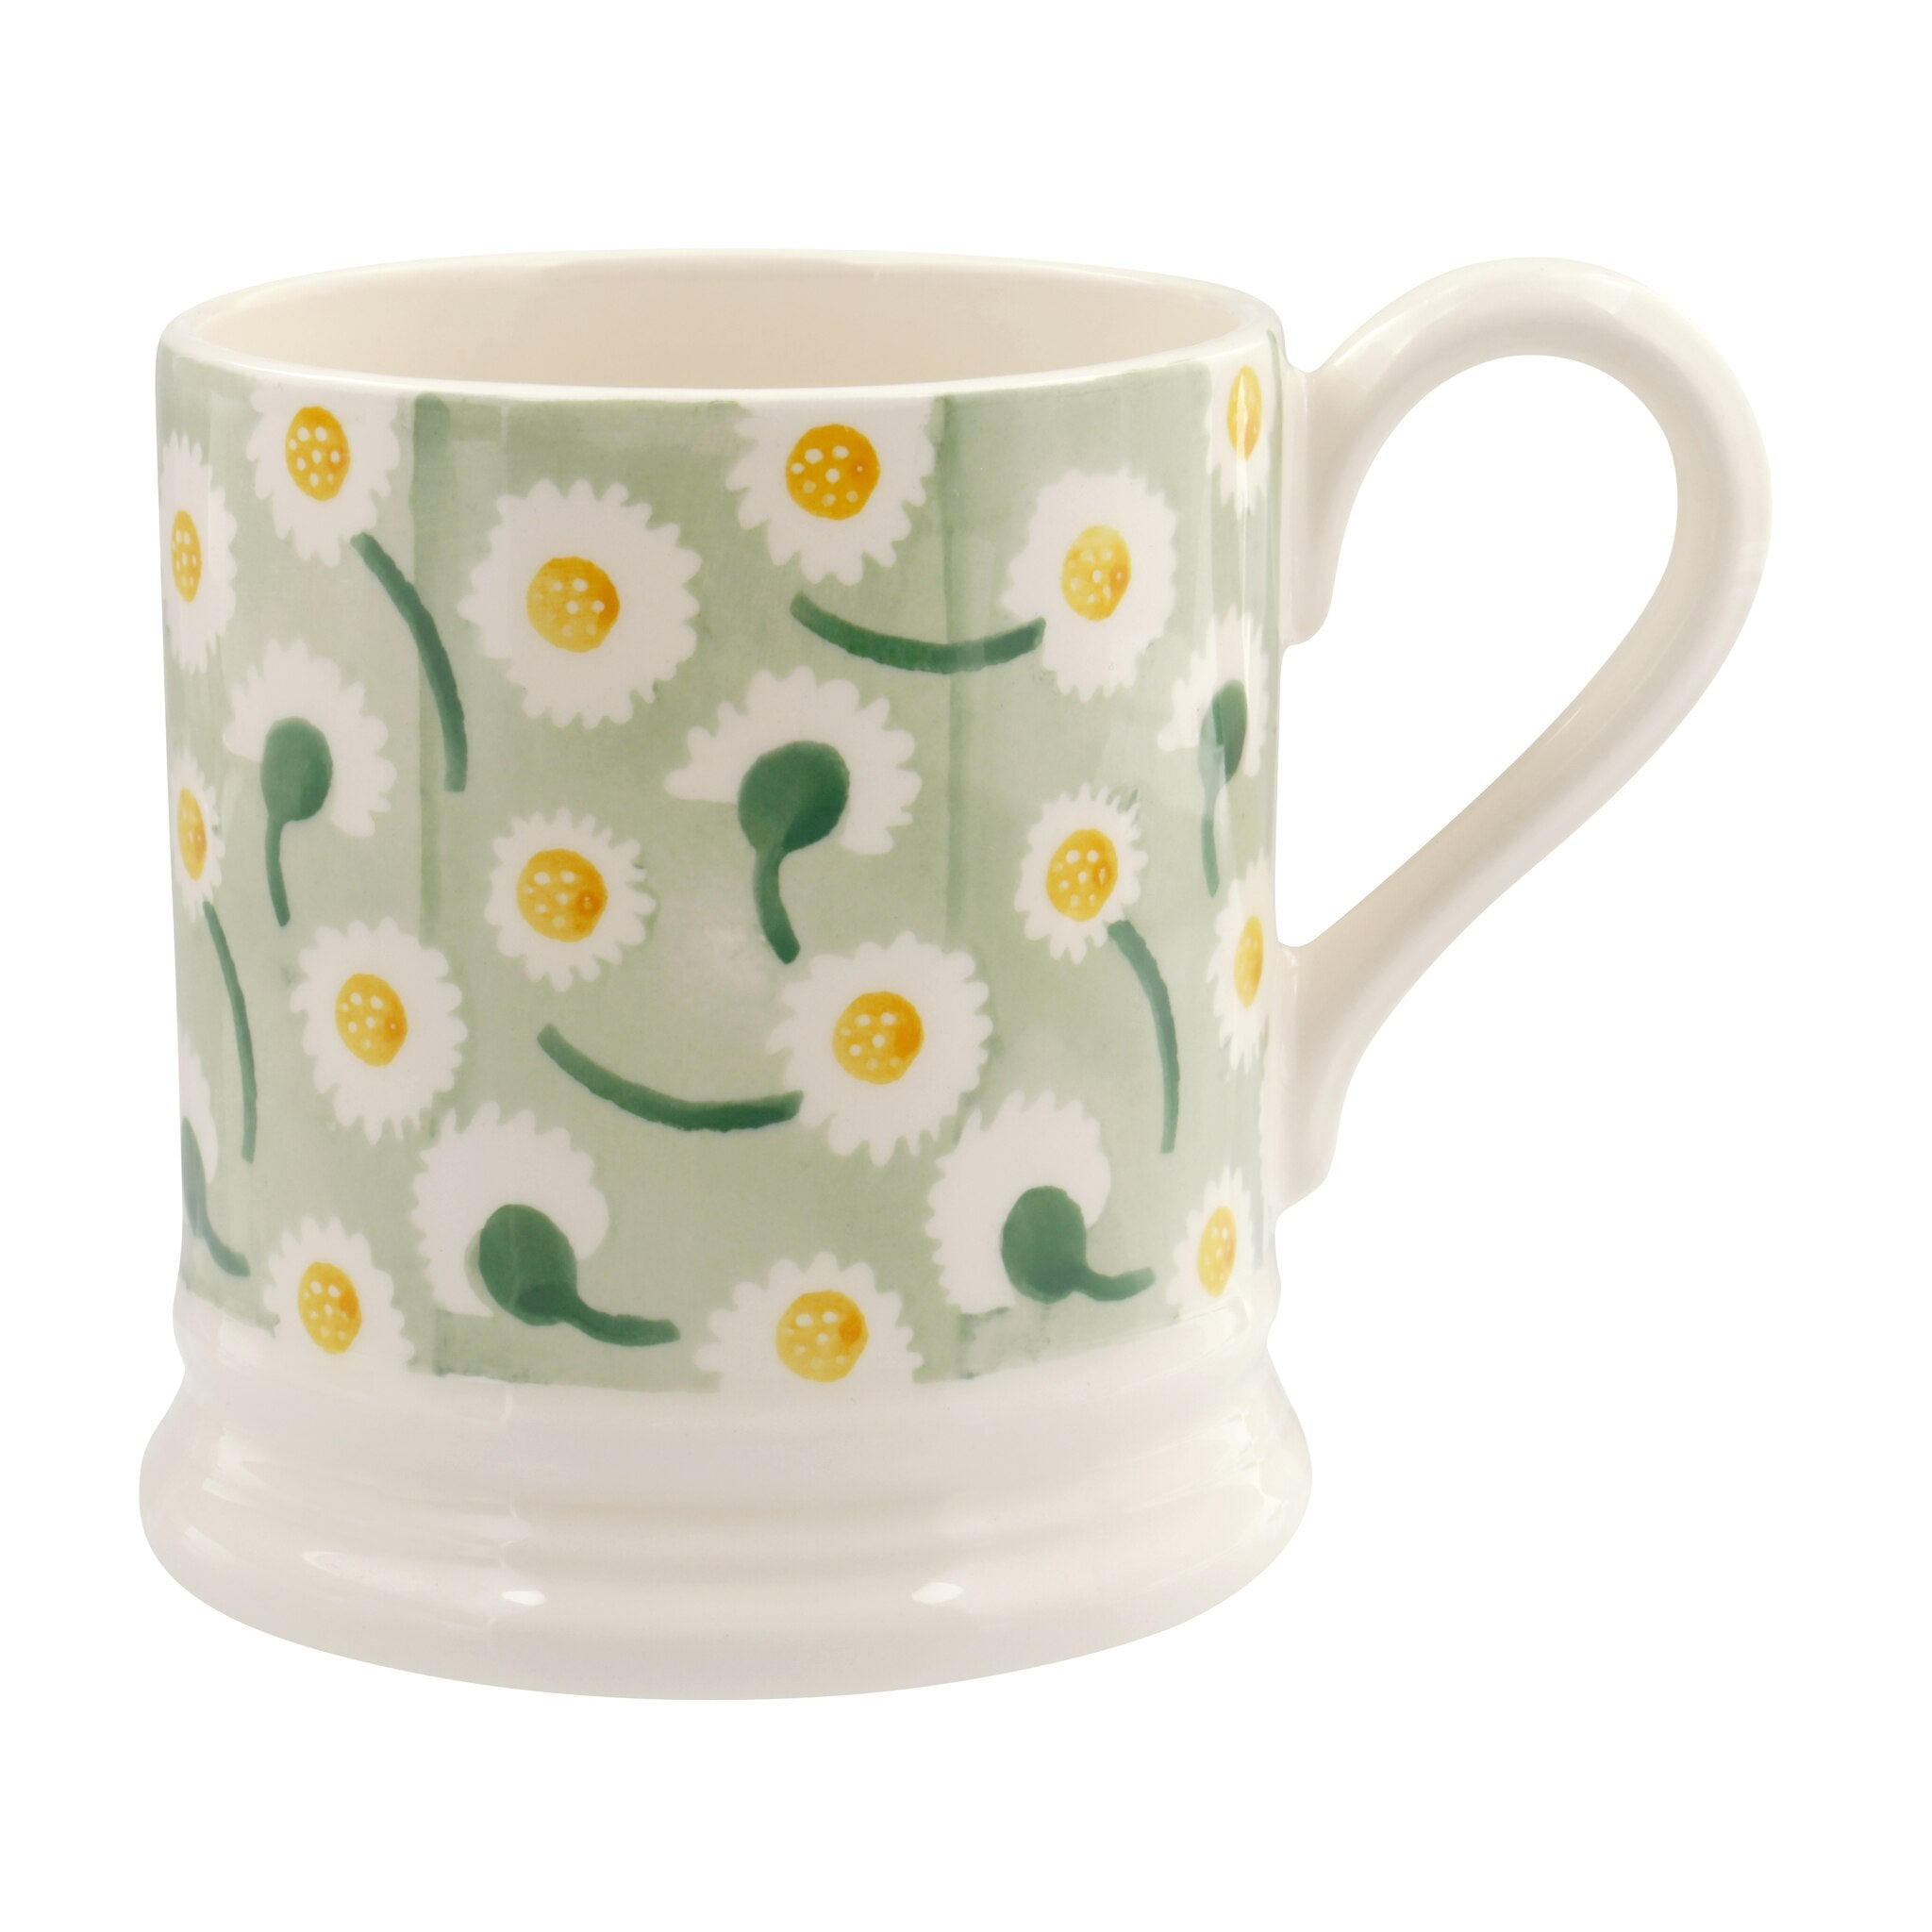 Daisy Light Green 1/2 Pt Mug